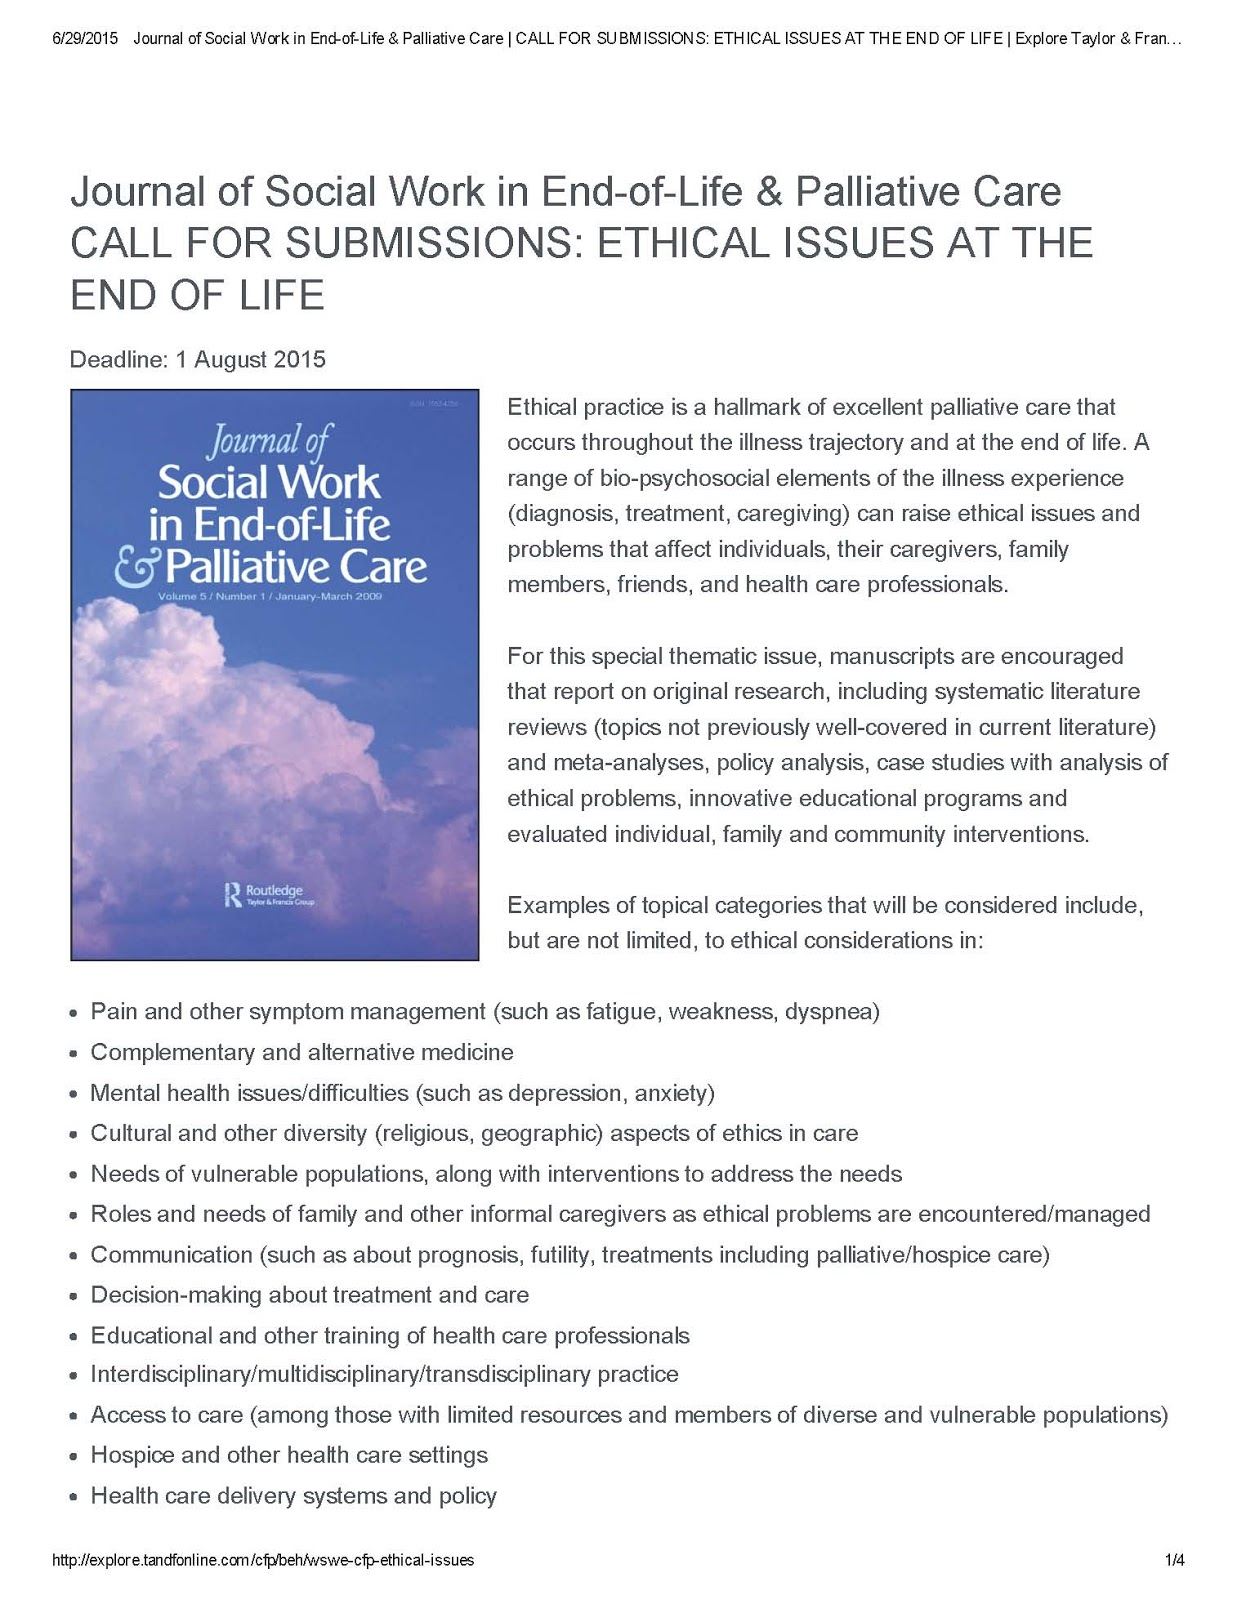 Ethical Issues at the End of Life – CFP | Bioethics Research Library